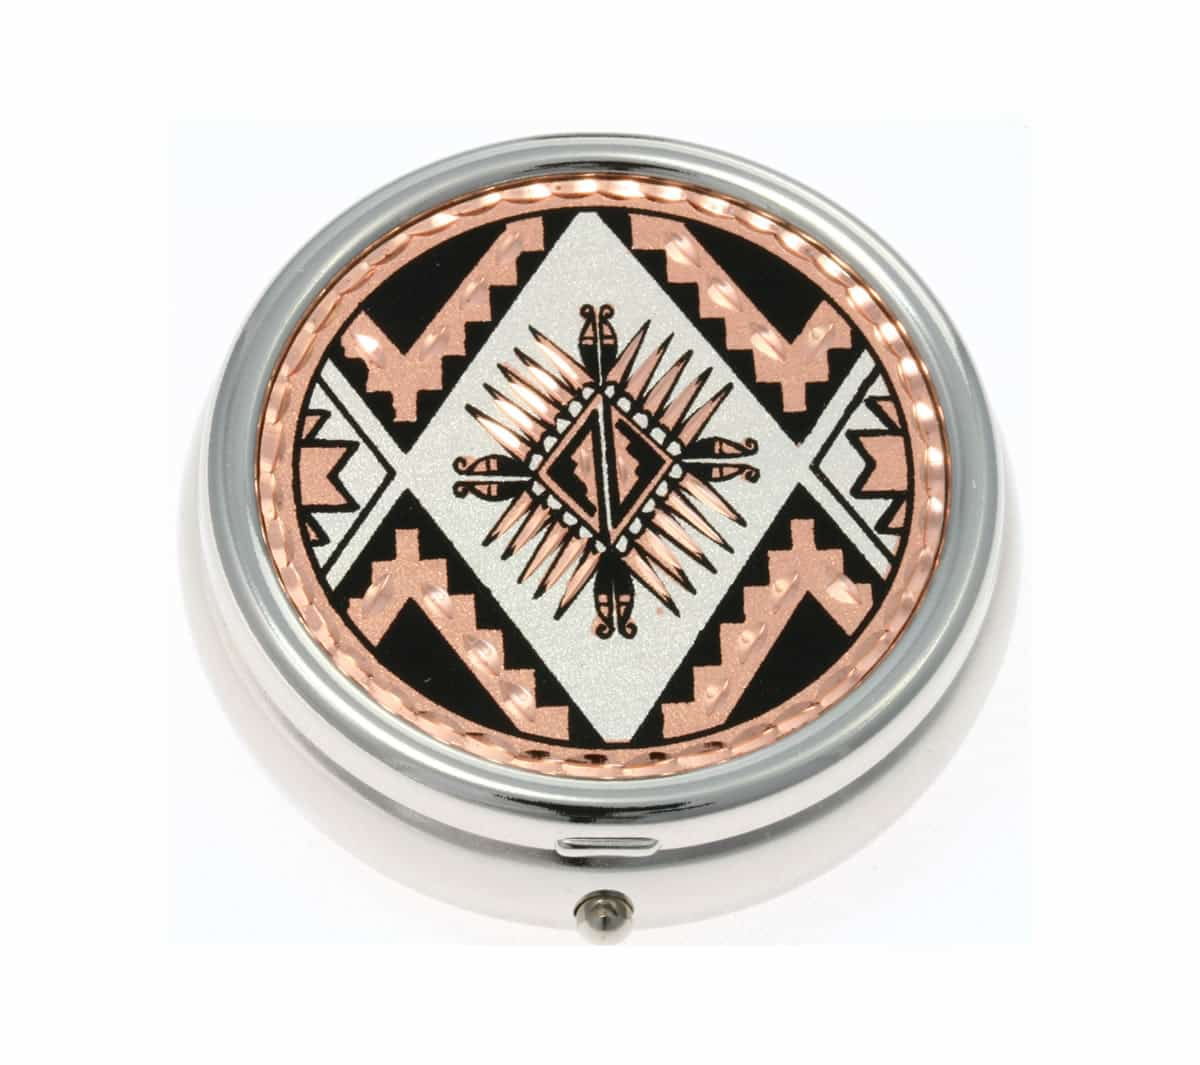 SW Native American sunburst handcrafted copper artwork decorated silver plated pill boxes